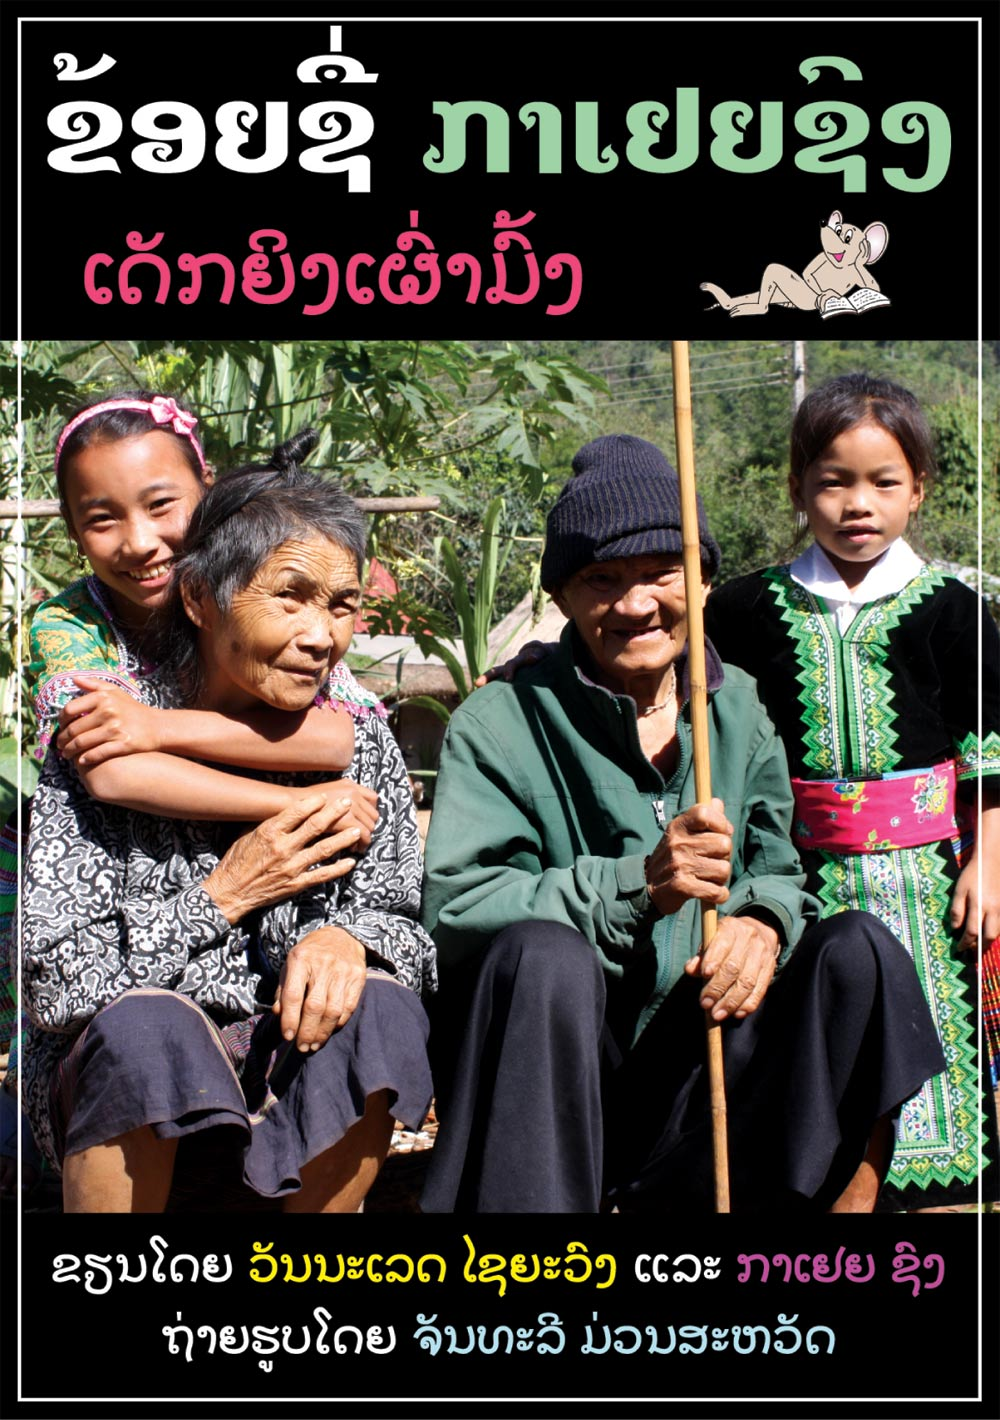 I am Kayia Xong large book cover, published in Lao language